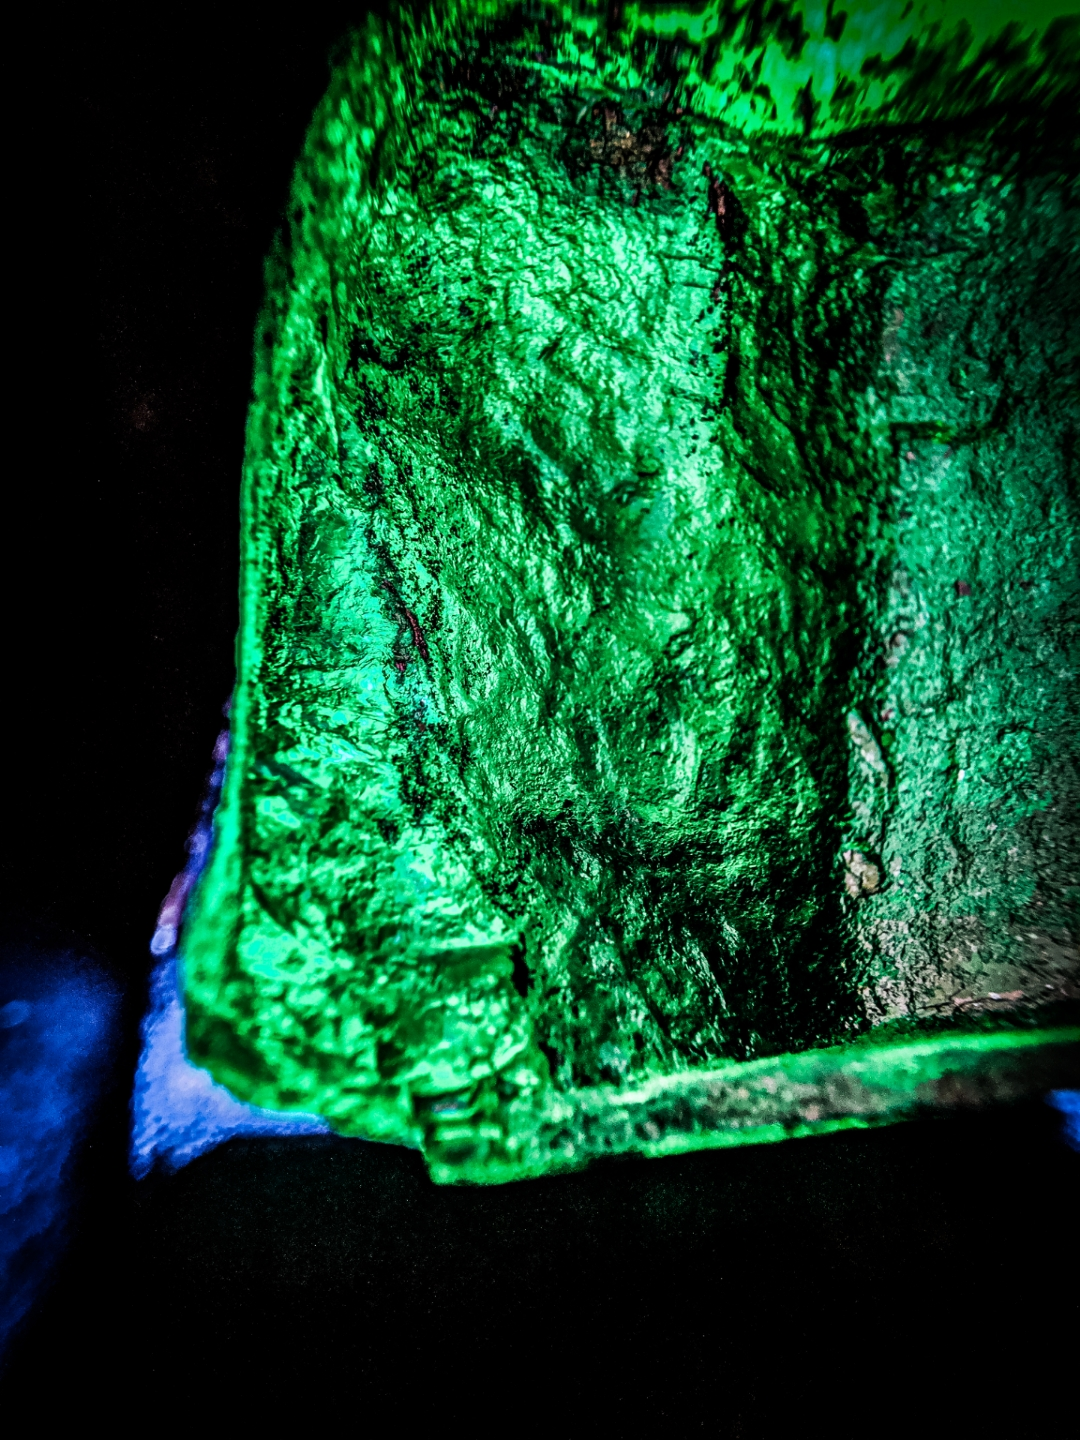 emerald, inkalamu, lion emerald, inkalamu emerald, gemfields, diacolor, dlf emporio, eyesforluxury, luxury photographer, luxury blogger, luxury writer india, lifestyle photographer, lifestyle blogger, naina redhu, naina, naina.co, zambian emerald, high commissioner, zambia, kagem mine, emerald mine, eyes for luxury